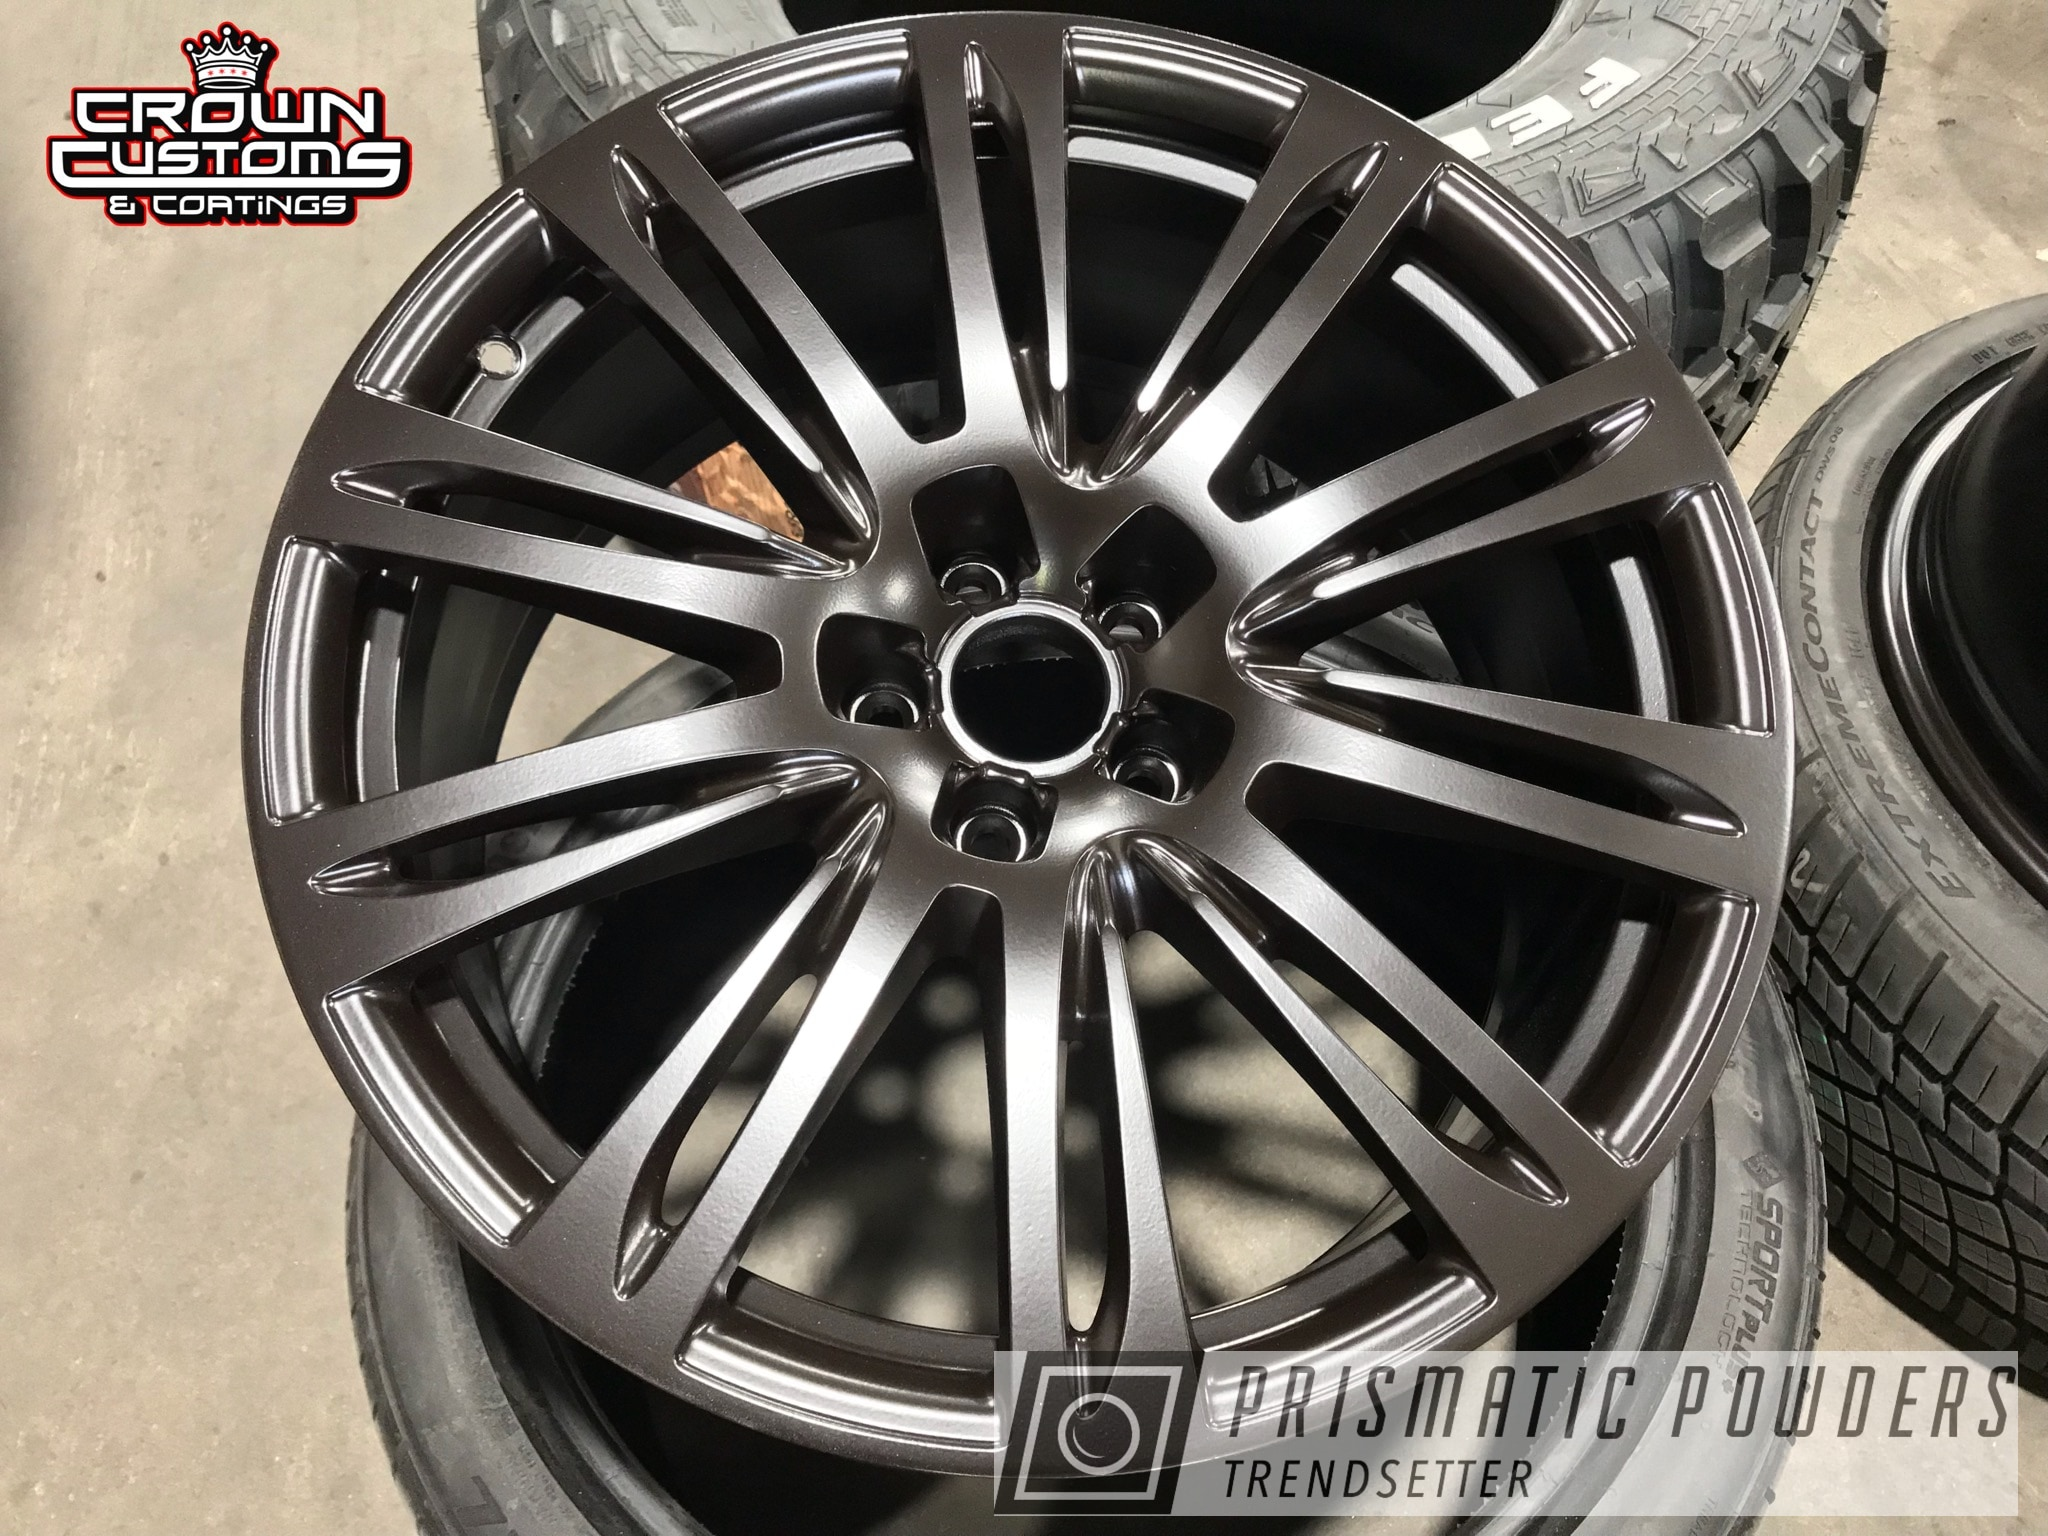 Powder Coating: Wheels,Automotive,Audi Wheels,Powder Coated Audi Rims,Dark Chocolate PSB-6690,Audi